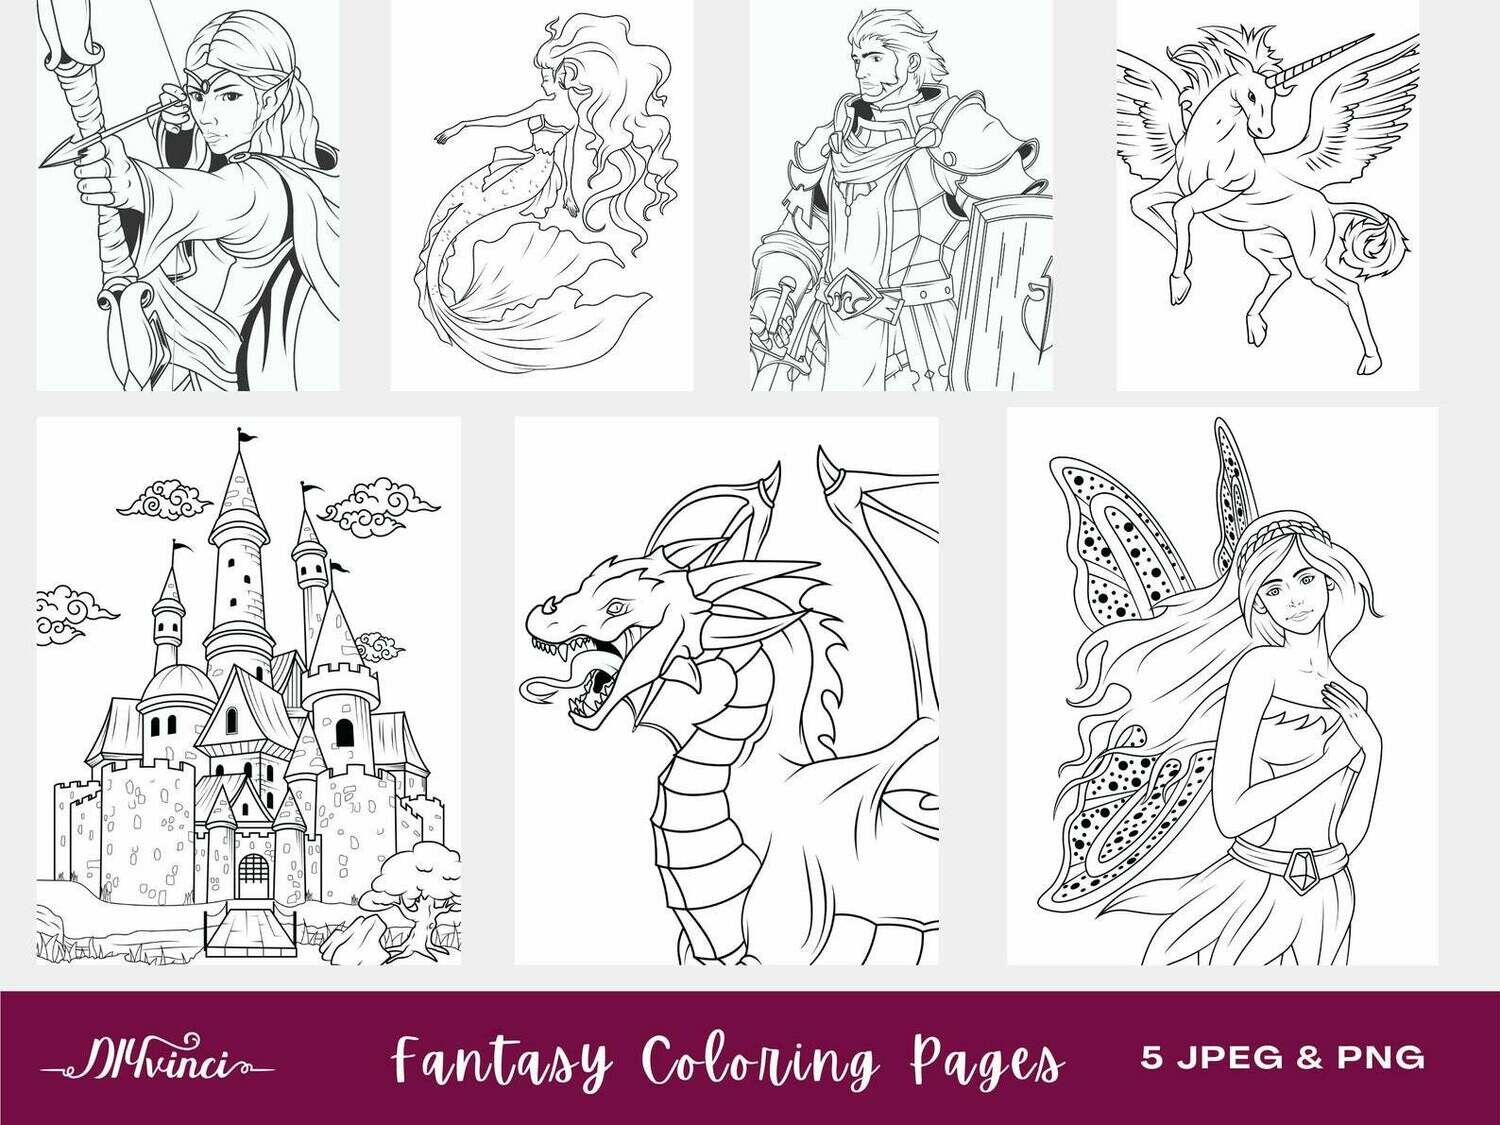 7 Printable Fantasy Coloring Pages - JPEG - Personal & Commercial Use